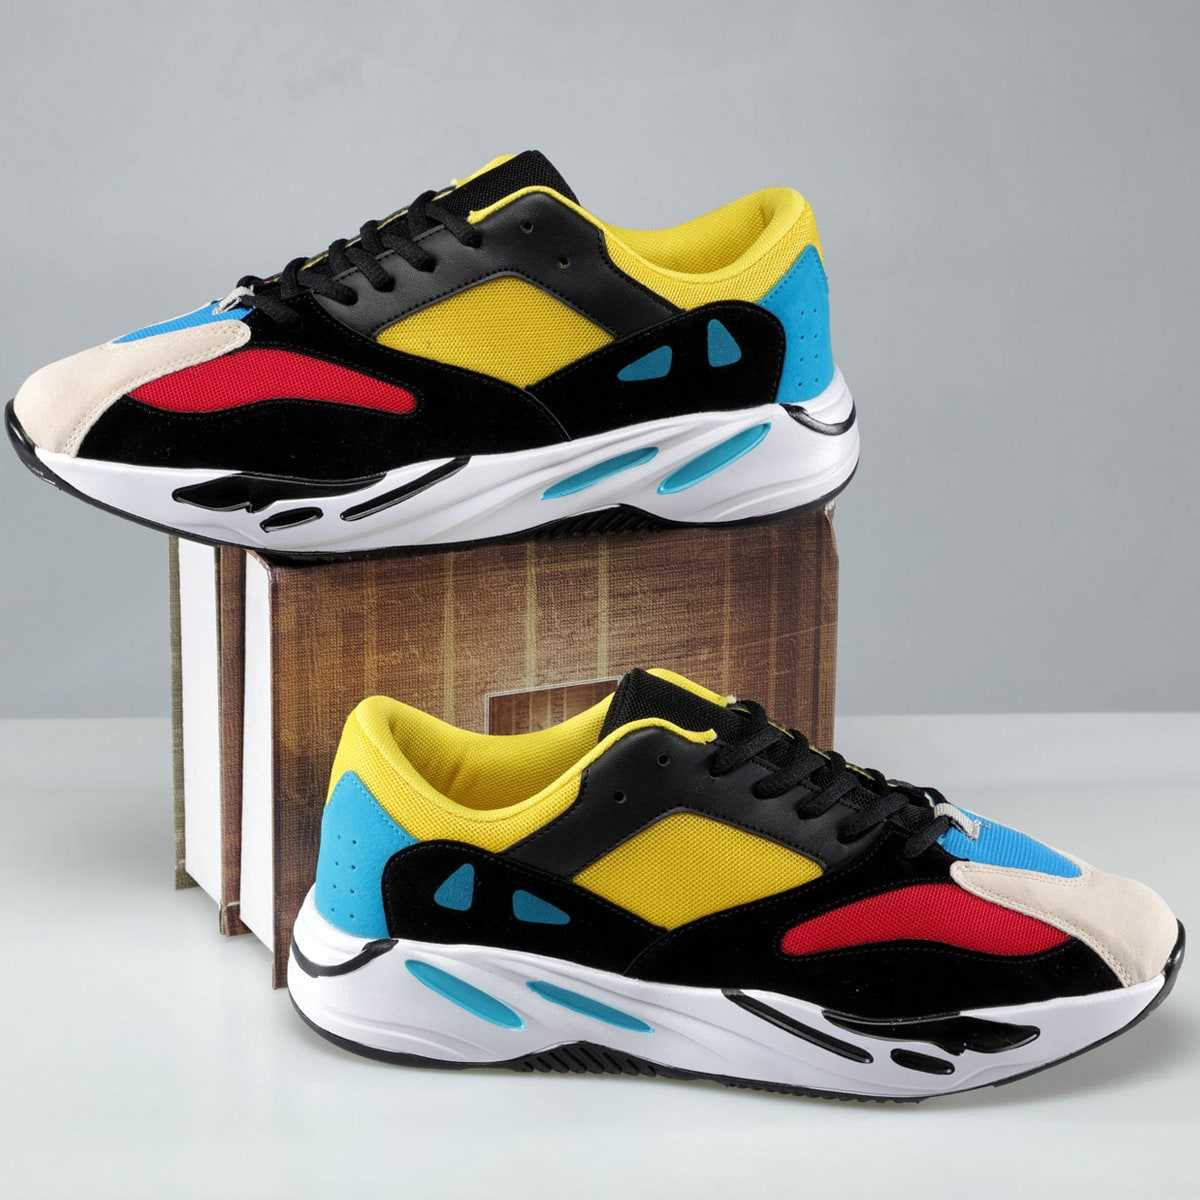 Guys Color Block Mesh Panel Trainers in Multicolor by ROMWE on GOOFASH